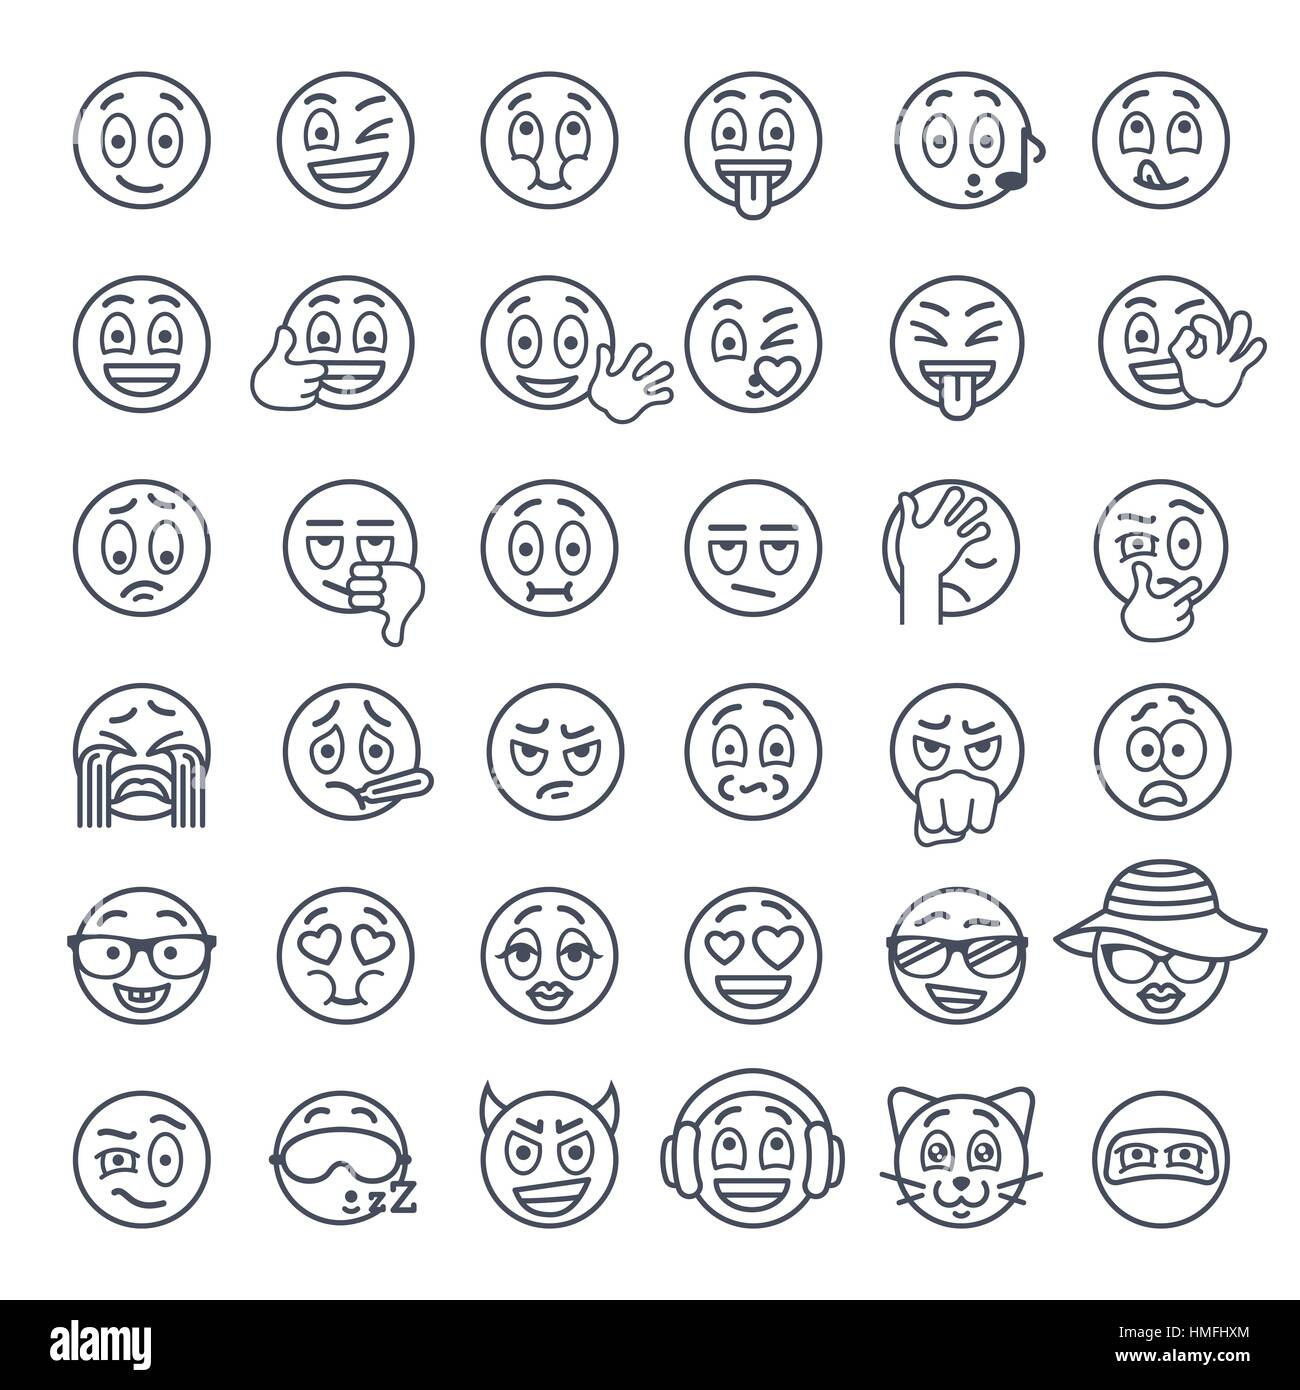 Smiley face thin lines flat vector icons set emoji emoticons smiley face thin lines flat vector icons set emoji emoticons different facial emotions and expression linear symbols cute ball cartoon character m buycottarizona Choice Image